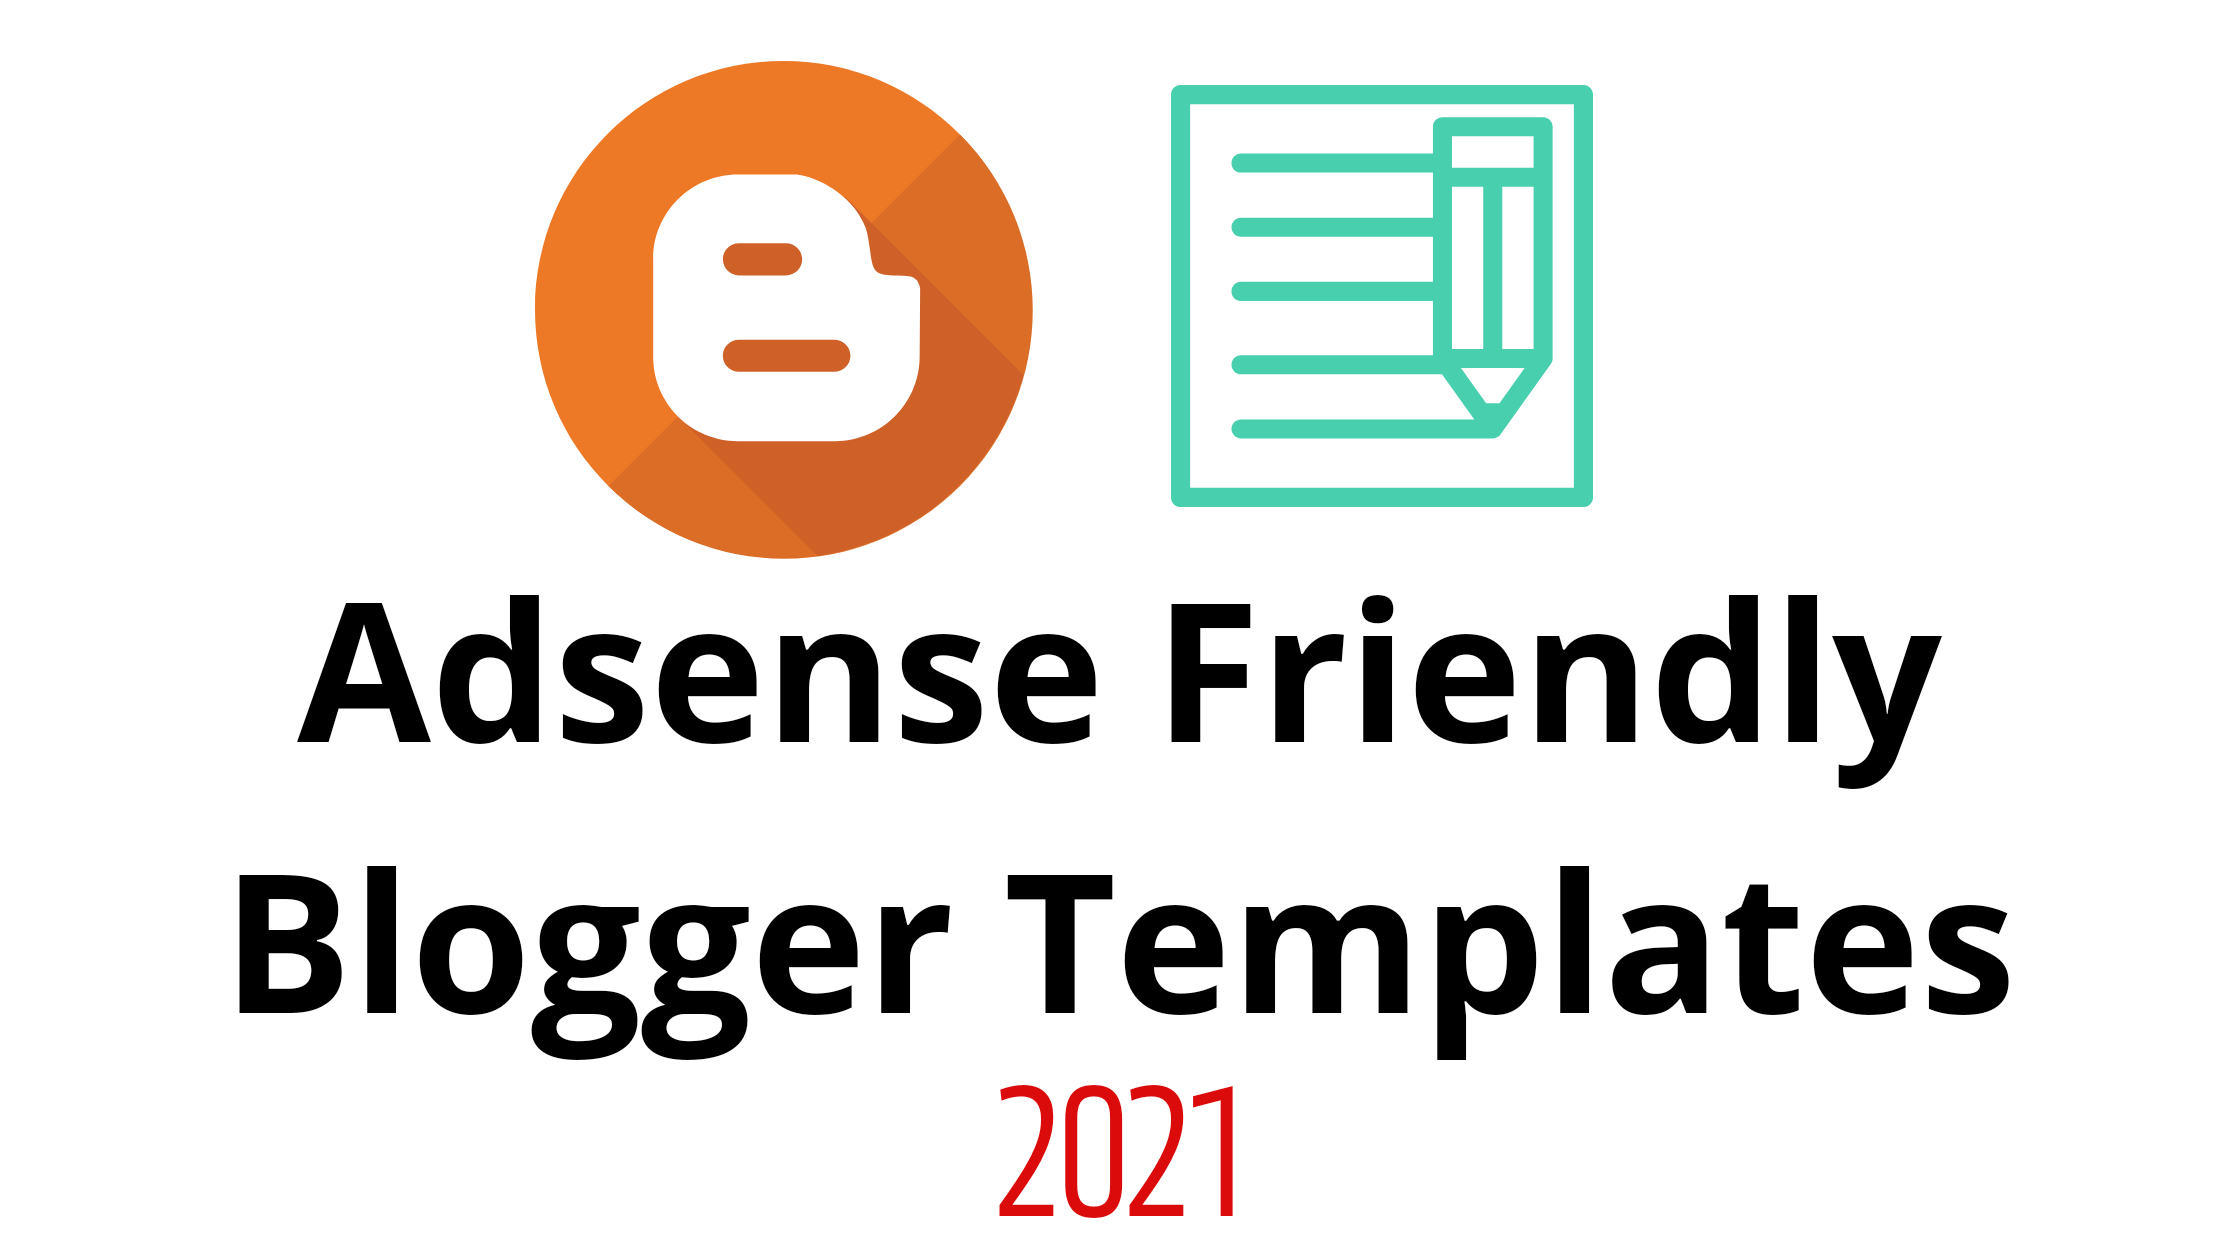 Adsense friendly Blogger Templates